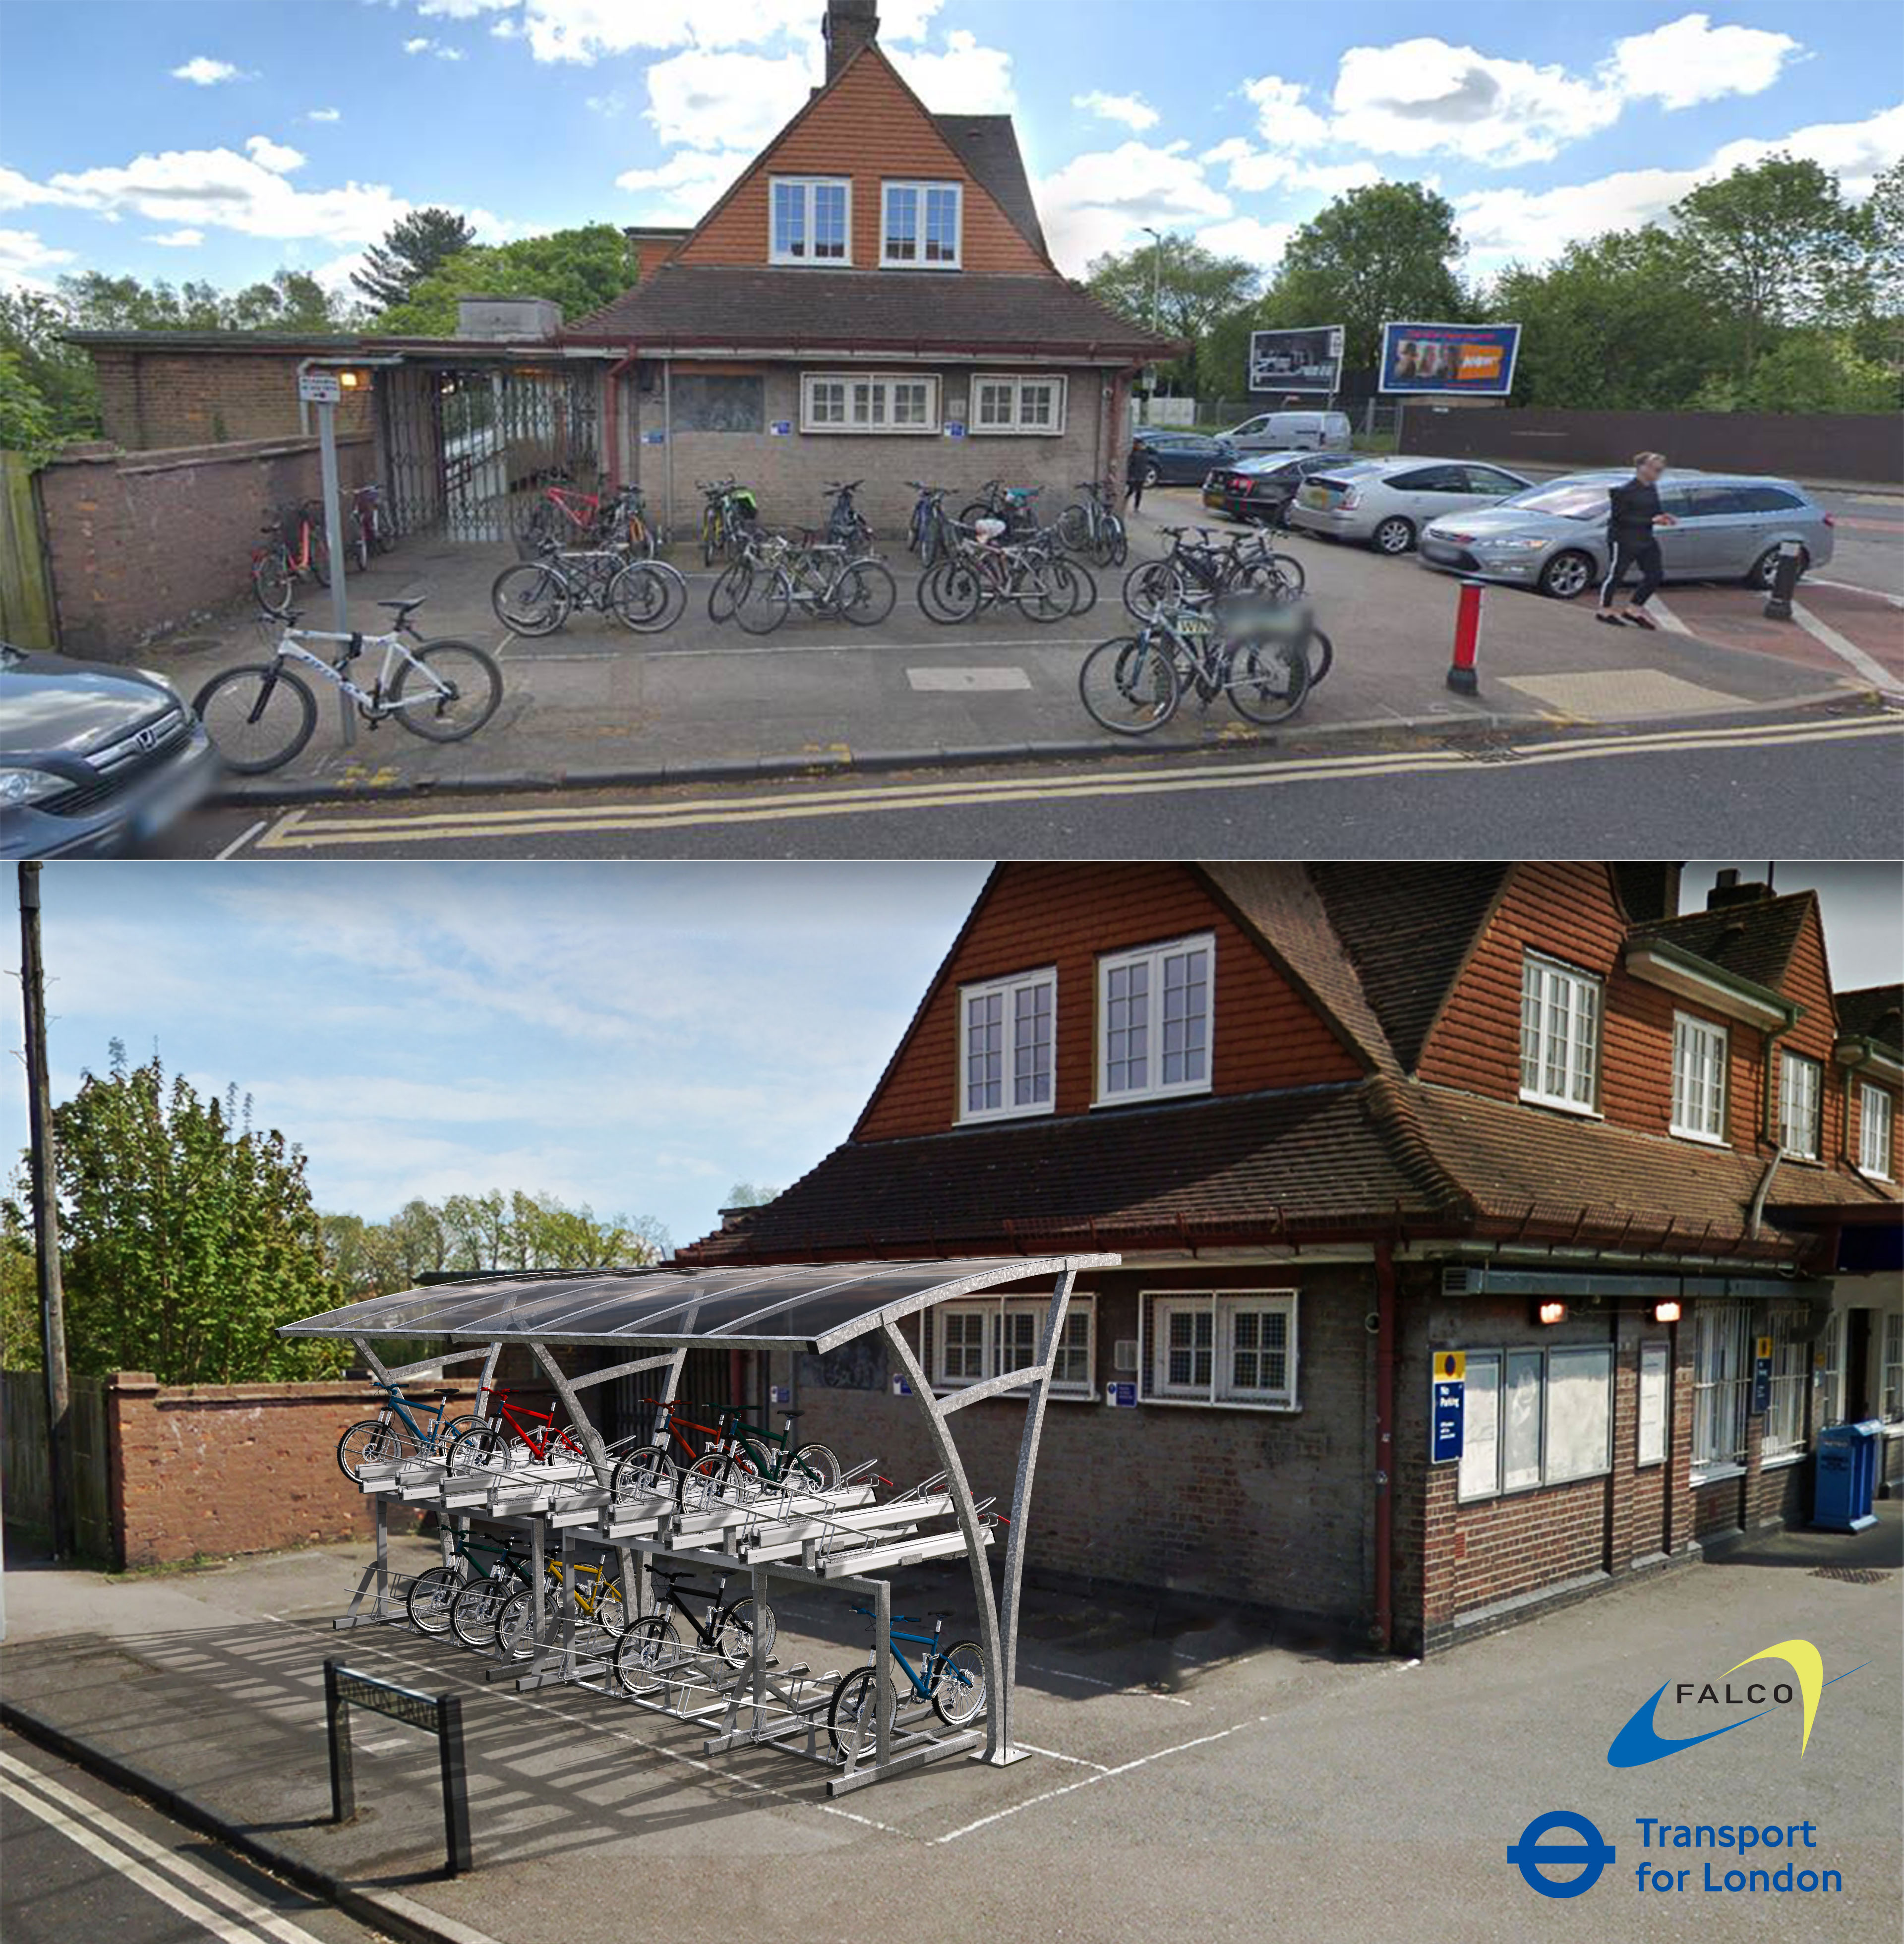 Tfl Croxley Station Cycle Shelter Rendering